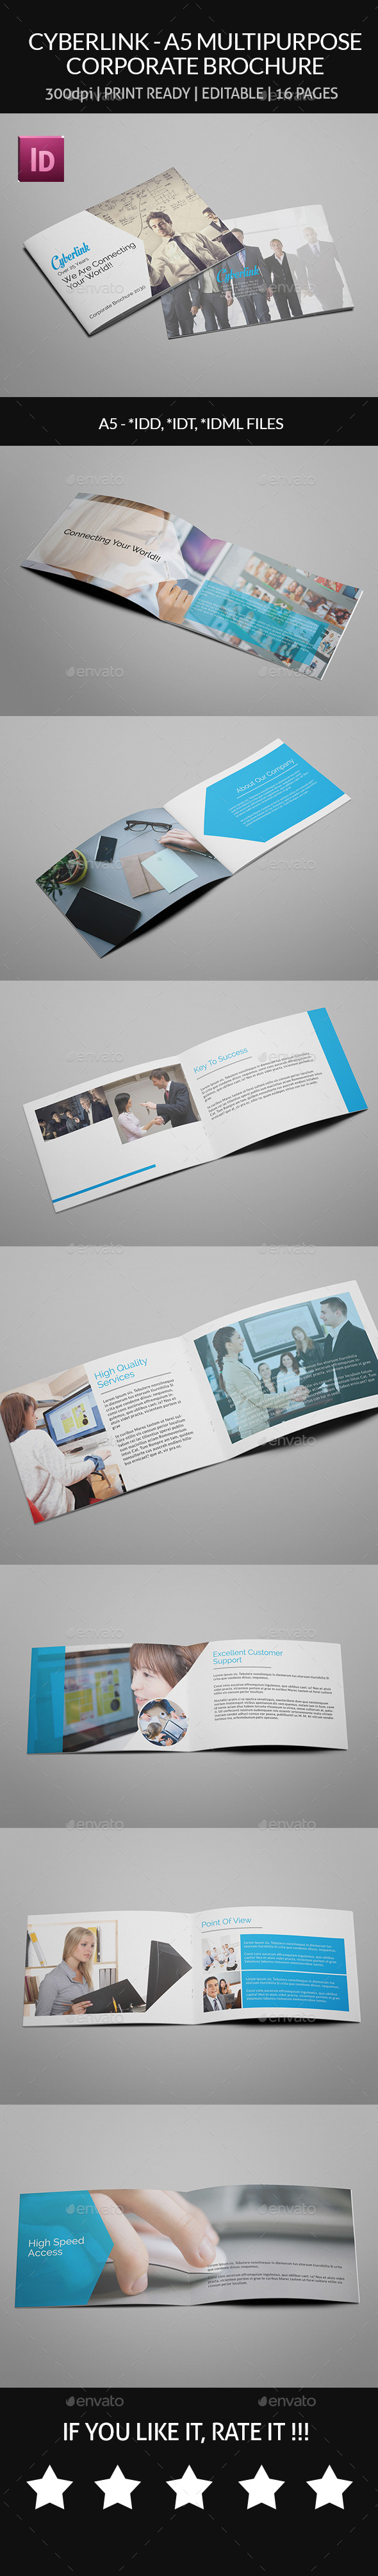 Cyberlink - A5 Multipurpose Corporate Brochure